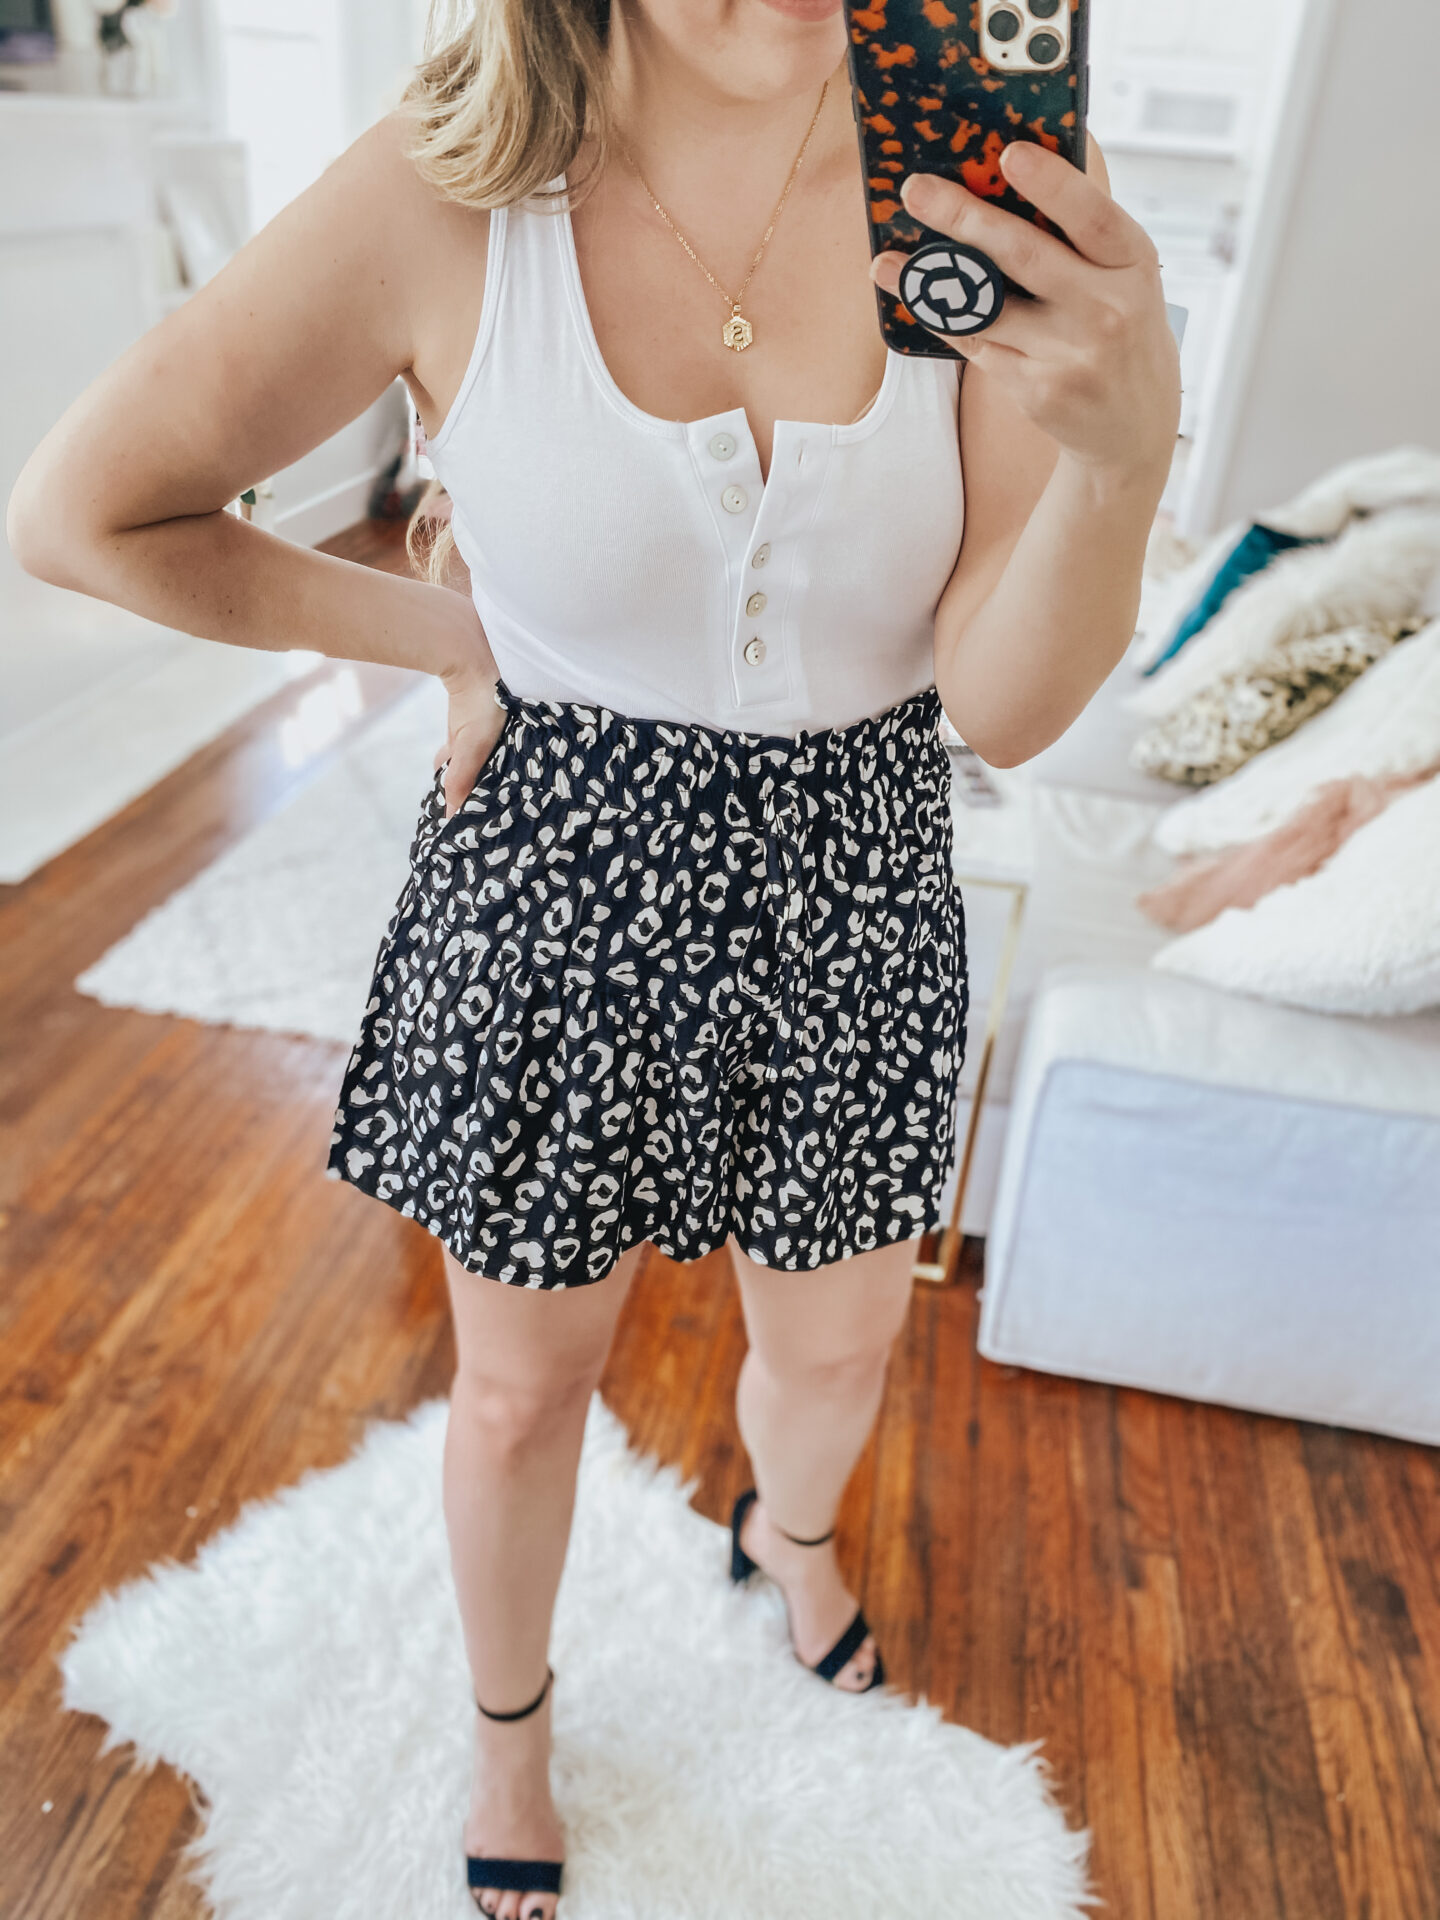 Cute Leopard Shorts from Amazon